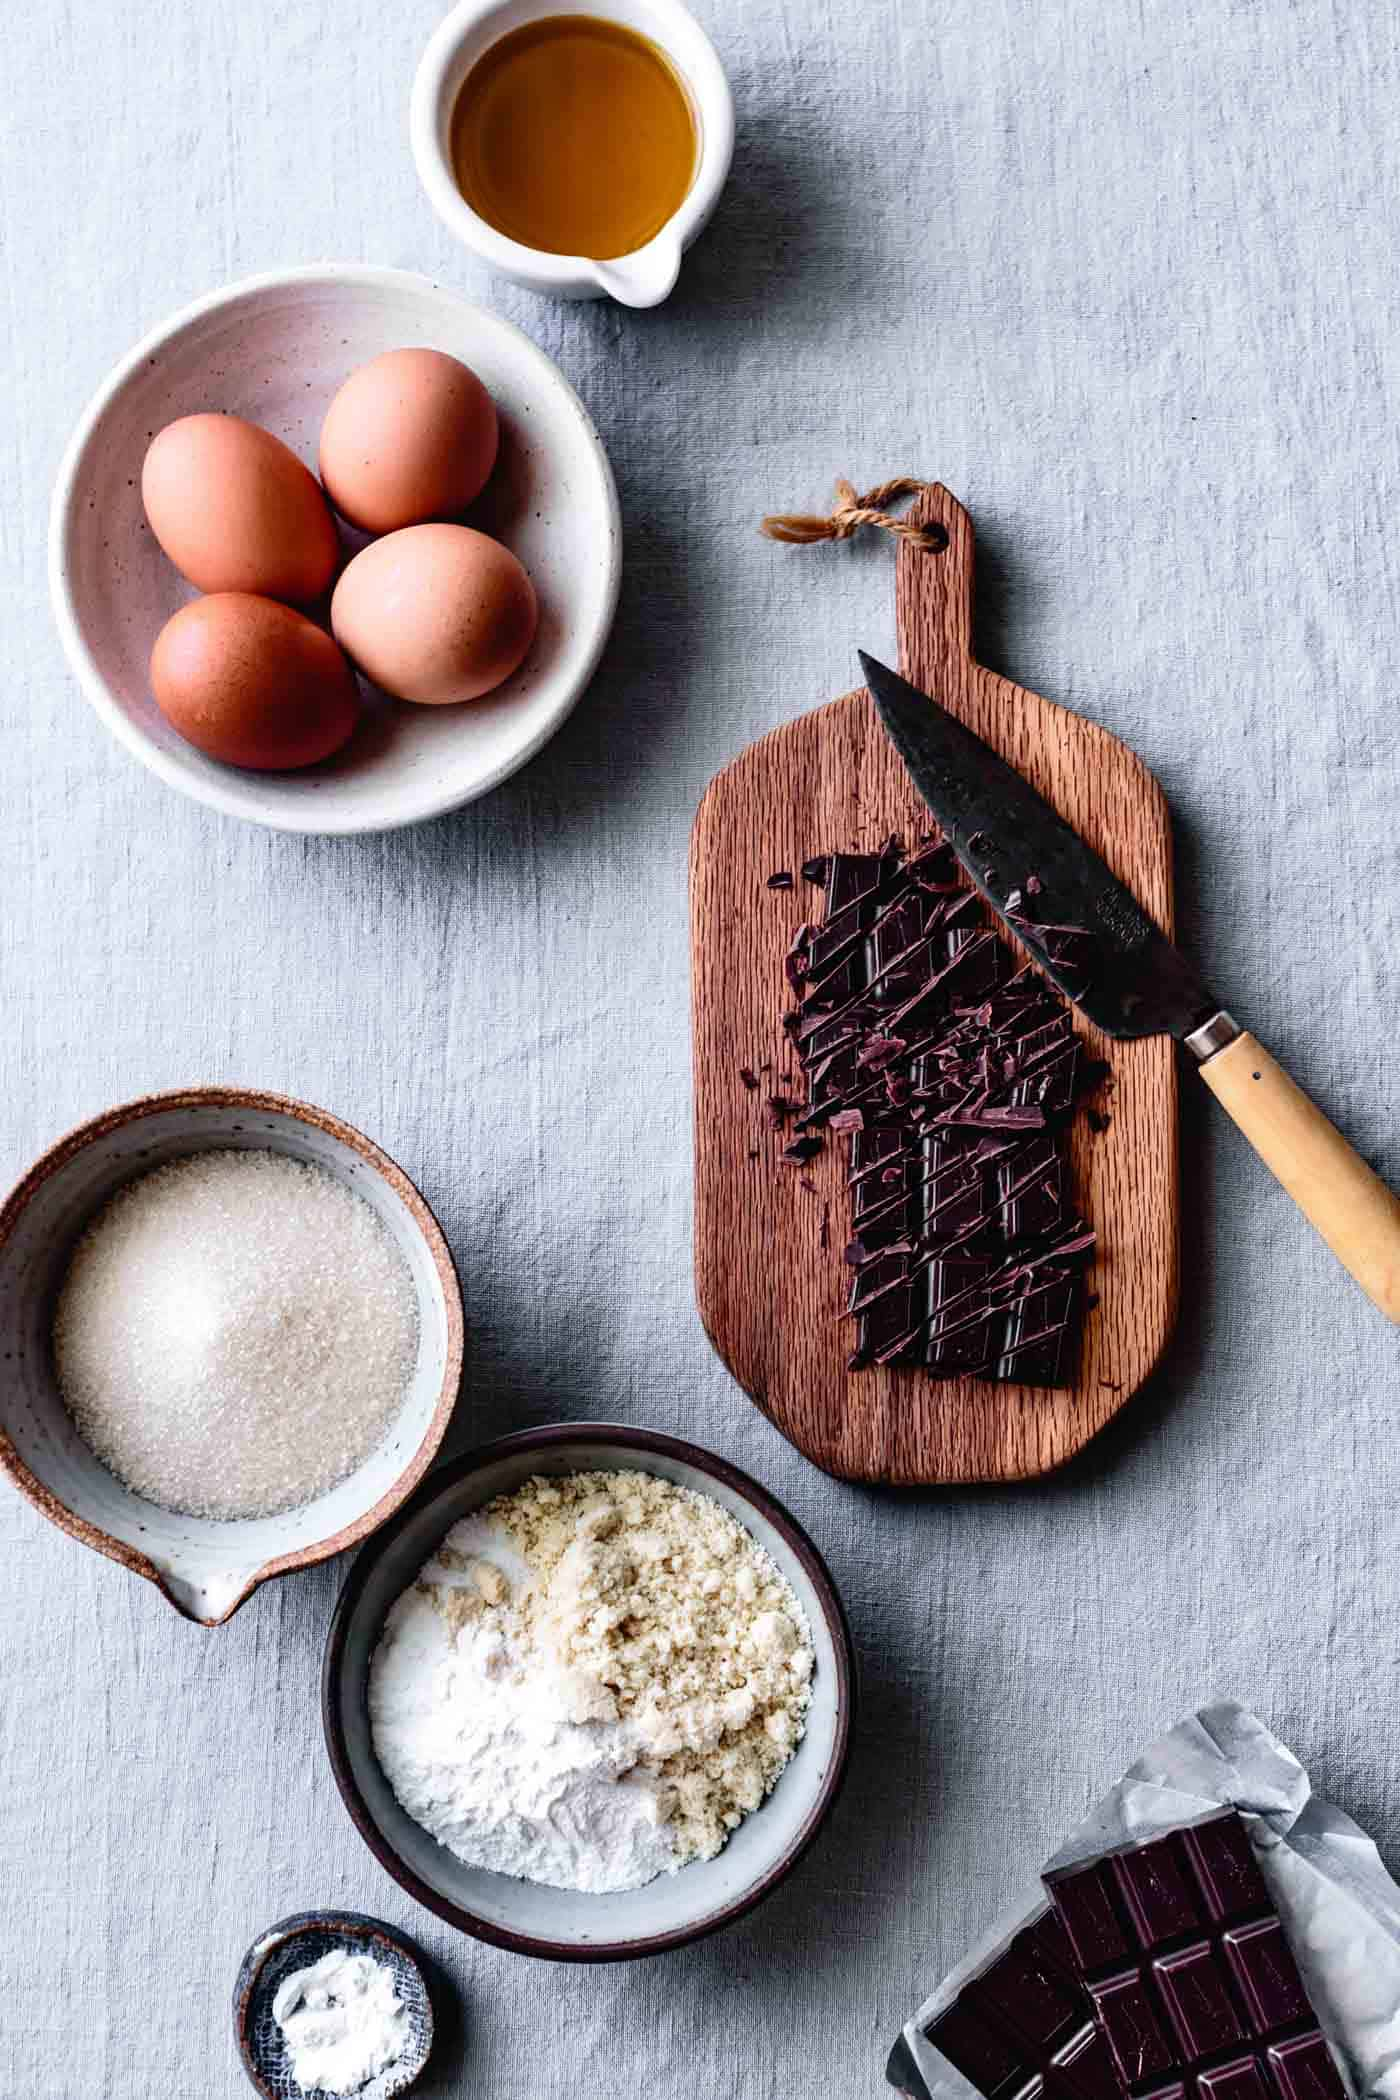 ingredients for gluten-free chocolate and almond cake recipe